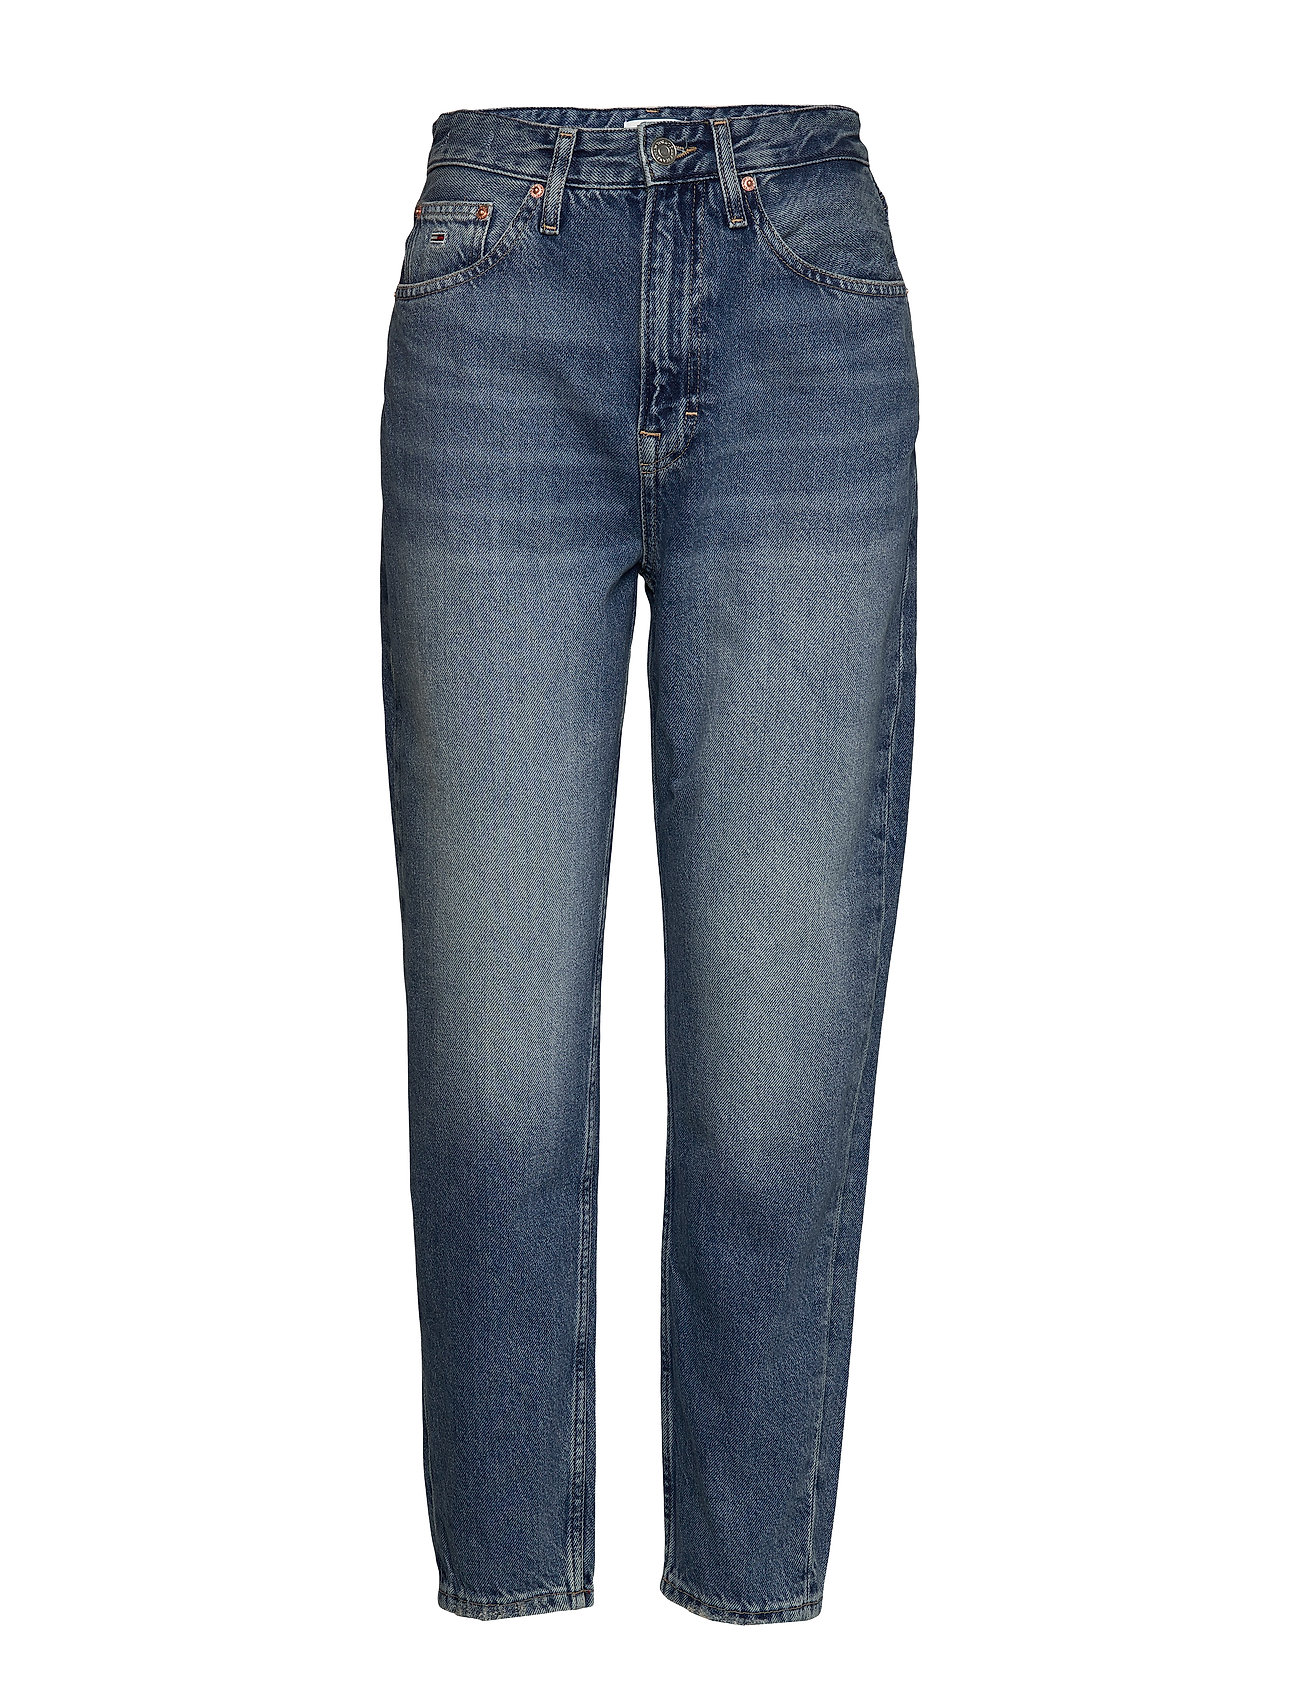 Tommy Jeans MOM JEAN HIGH RISE TAPERED SNDM - SUNDAY MID BL RIG